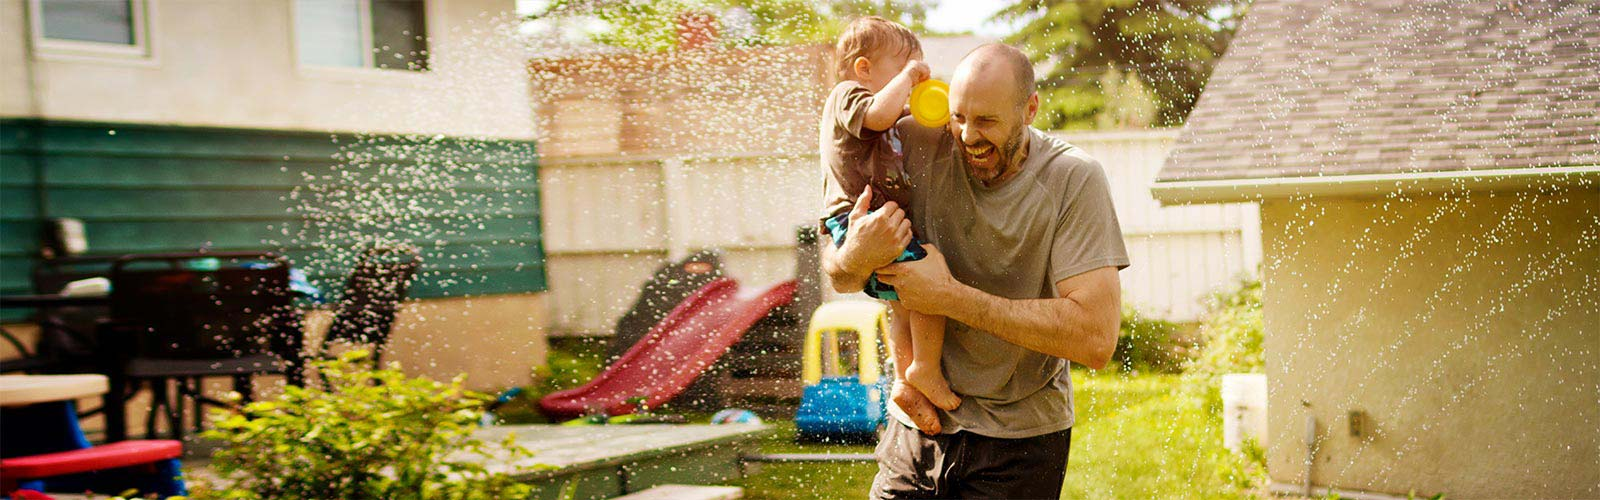 Father carrying son through water sprinkler backyard building